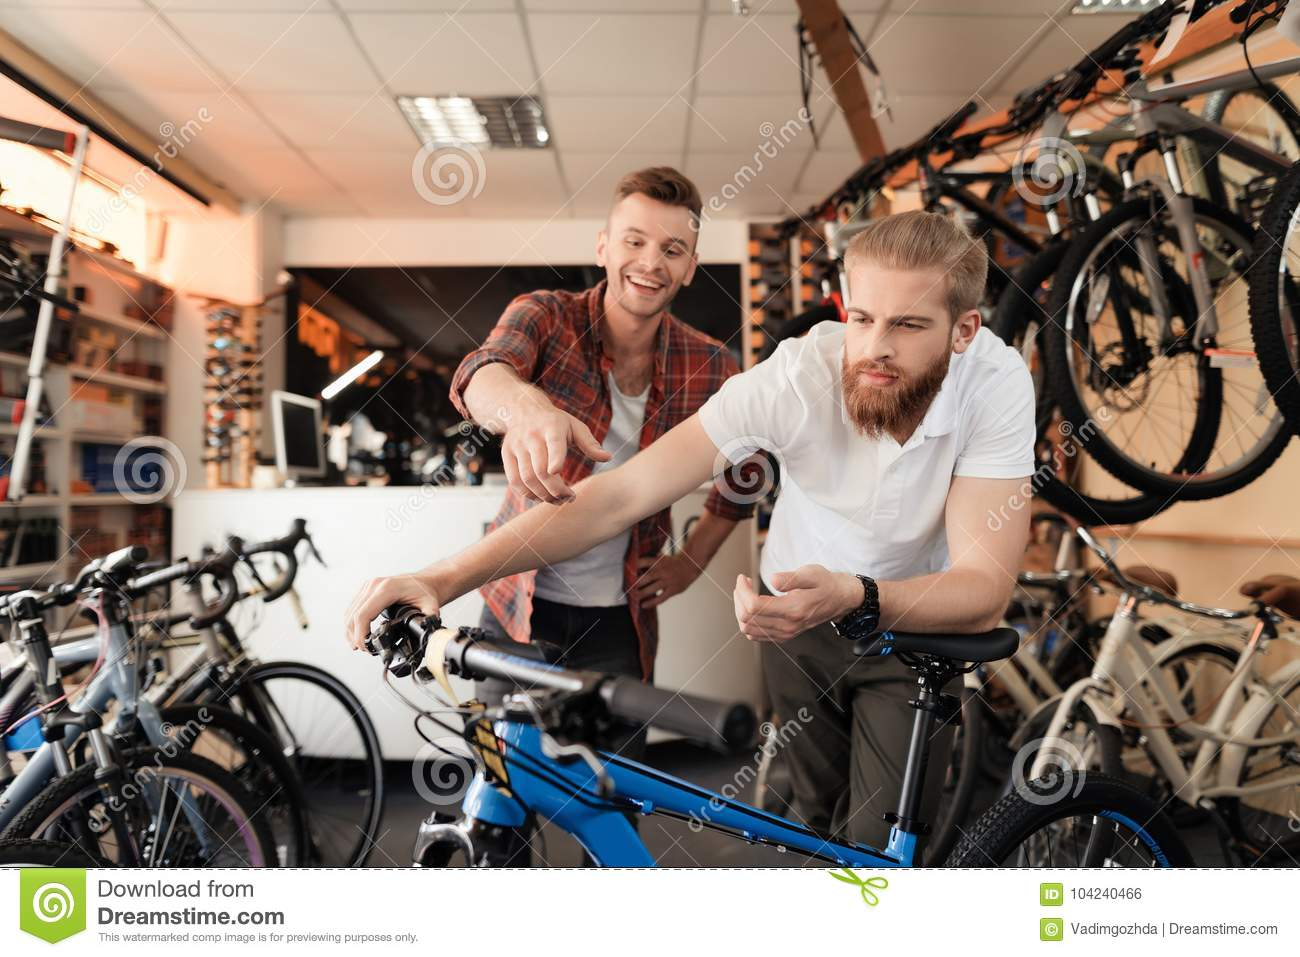 How to choose a bike for men by height, weight and type 68